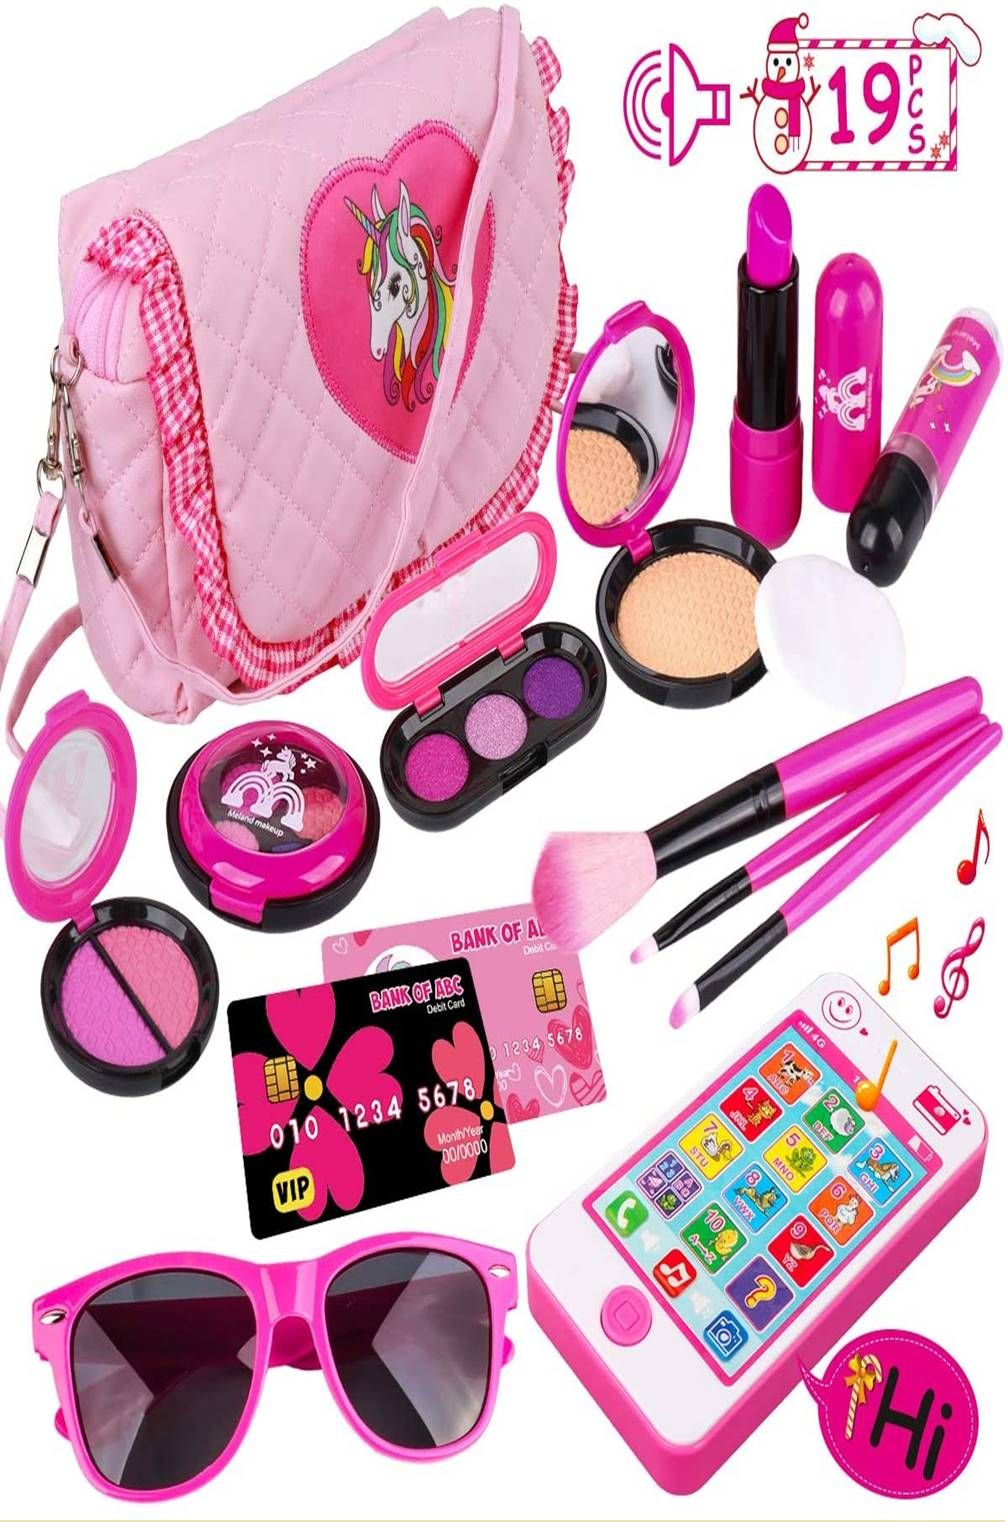 Useful Makeup Tips To Look Beautiful In 2020 Makeup Kit For Kids Little Girl Makeup Kit Kids Makeup